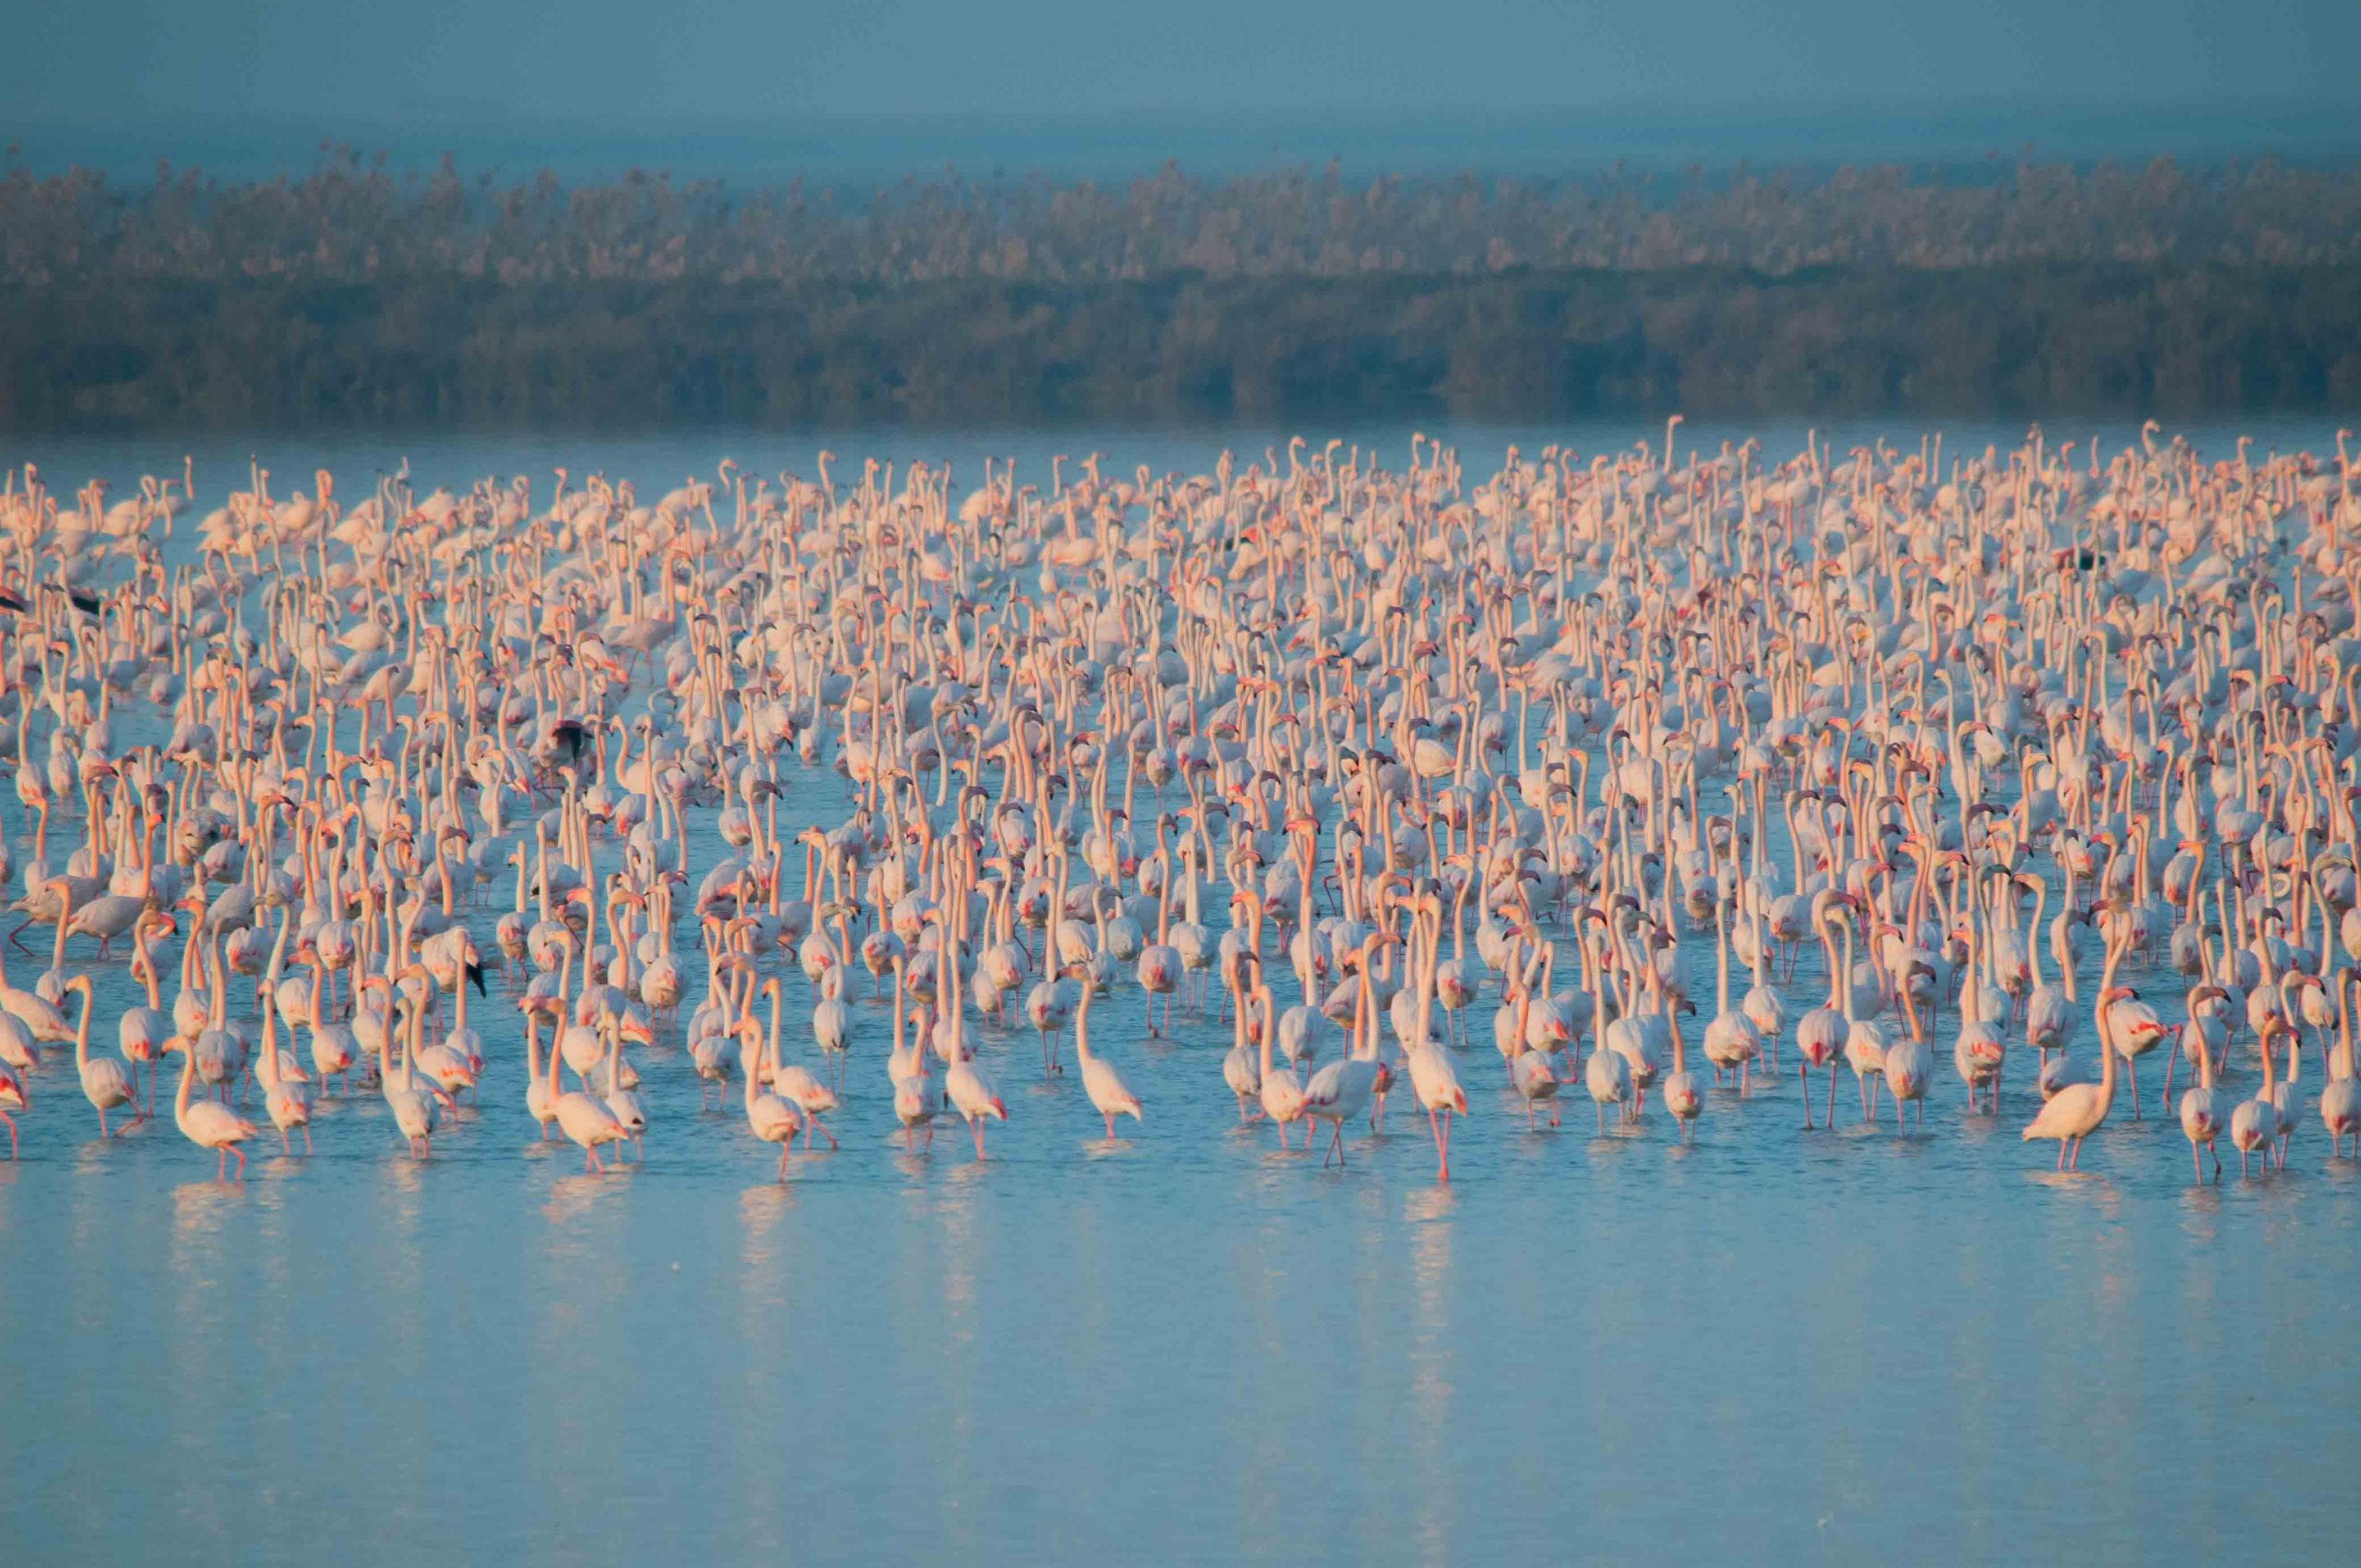 A flock of greater flamingos in the Doñana wetlands, where up to 30,000 are recorded, making them a major ecotourism attraction. Doñana is Europe's most important wetland for waterfowl. Credit: Rubén Rodríguez, EBD-CSIC